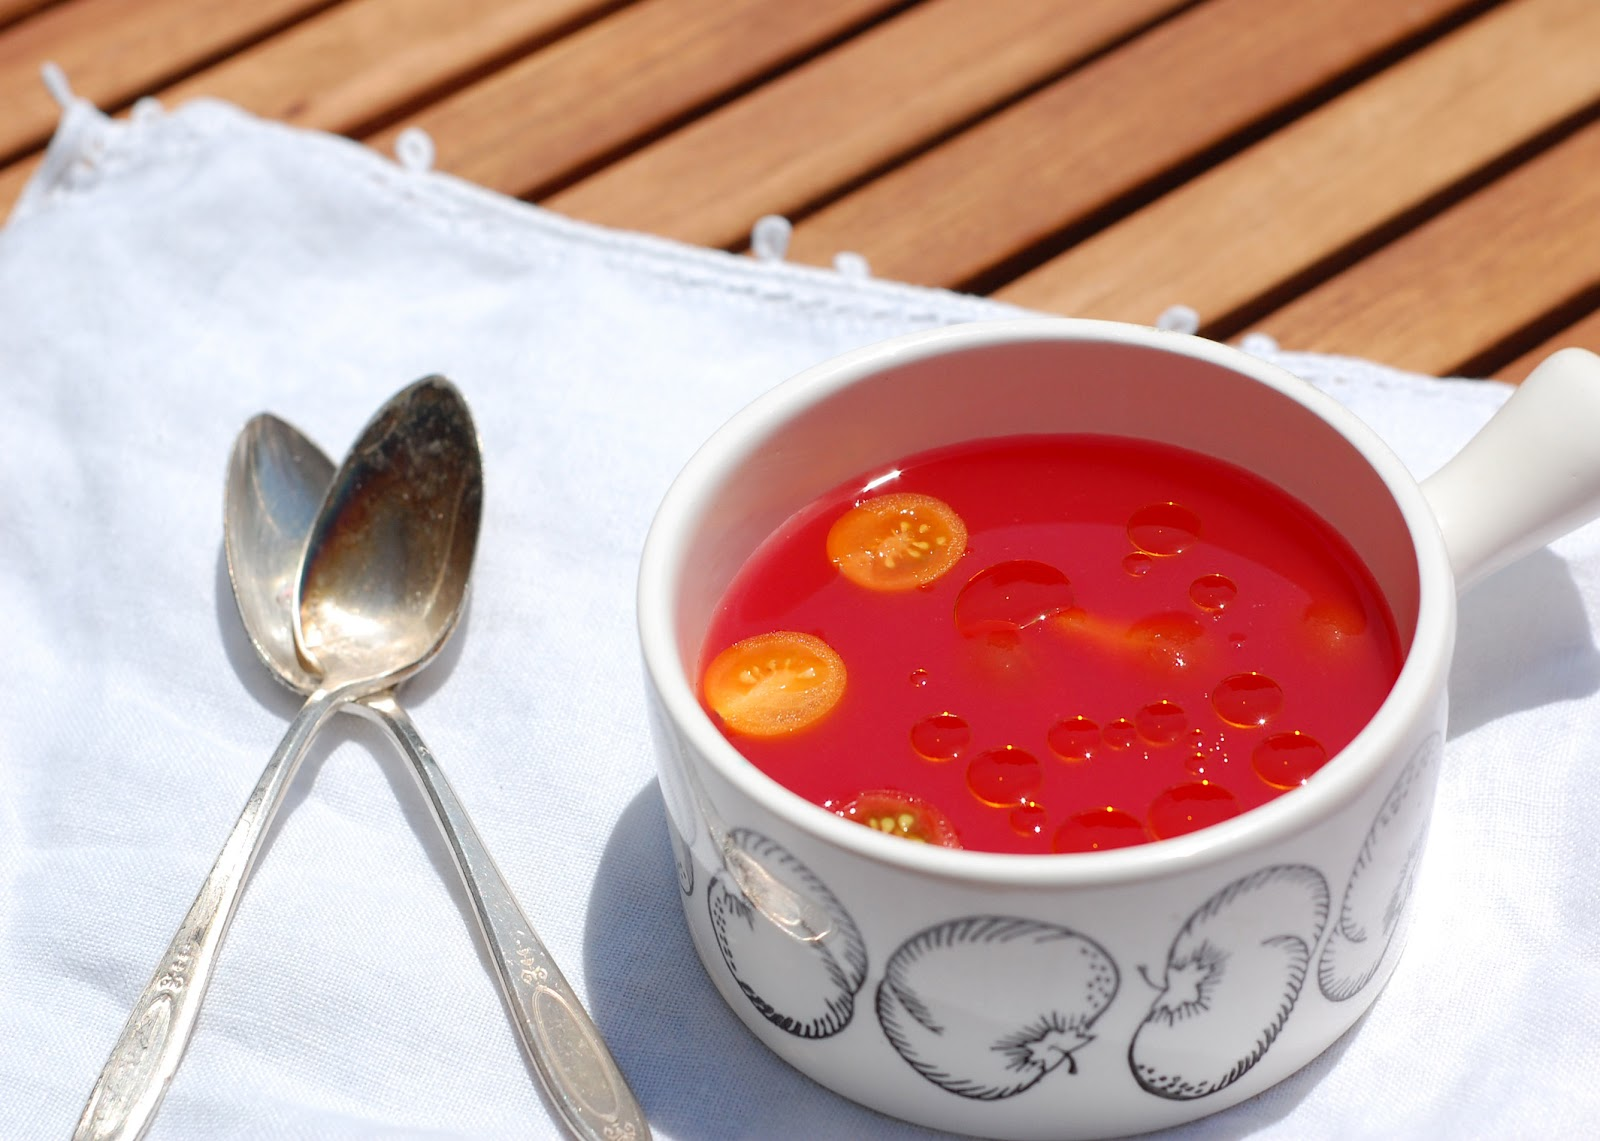 ... ! There's lots of summer left, why not jump on the cold soup train